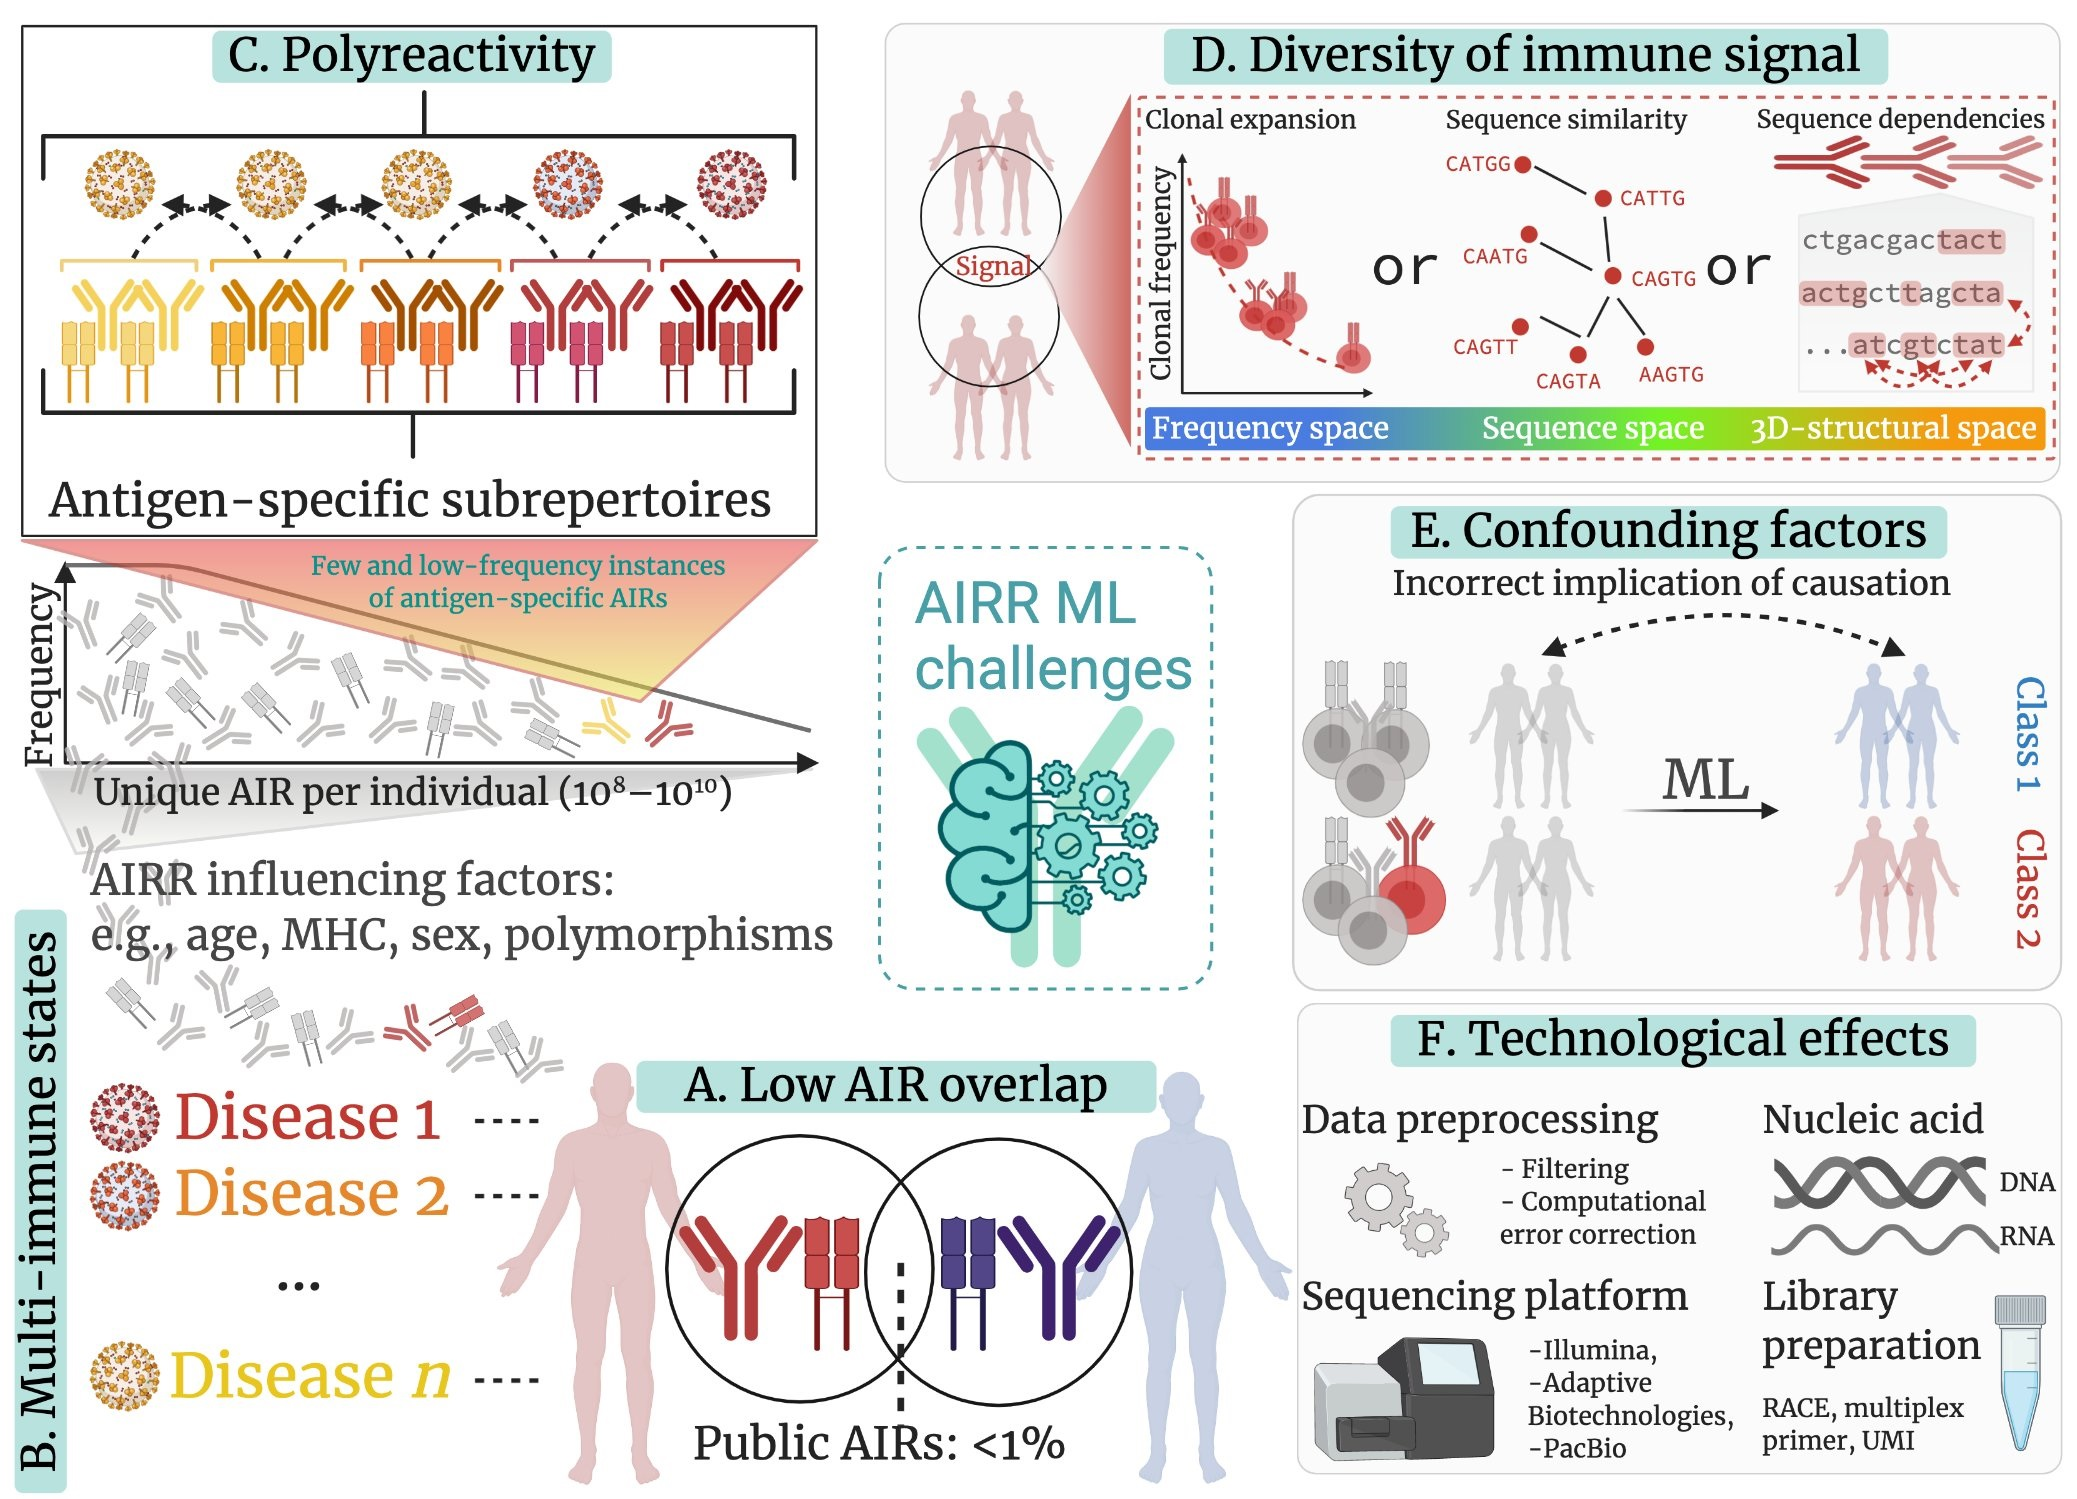 iReceptor Plus partners published a review article on mining AIRRs for biological and clinical information using machine learning